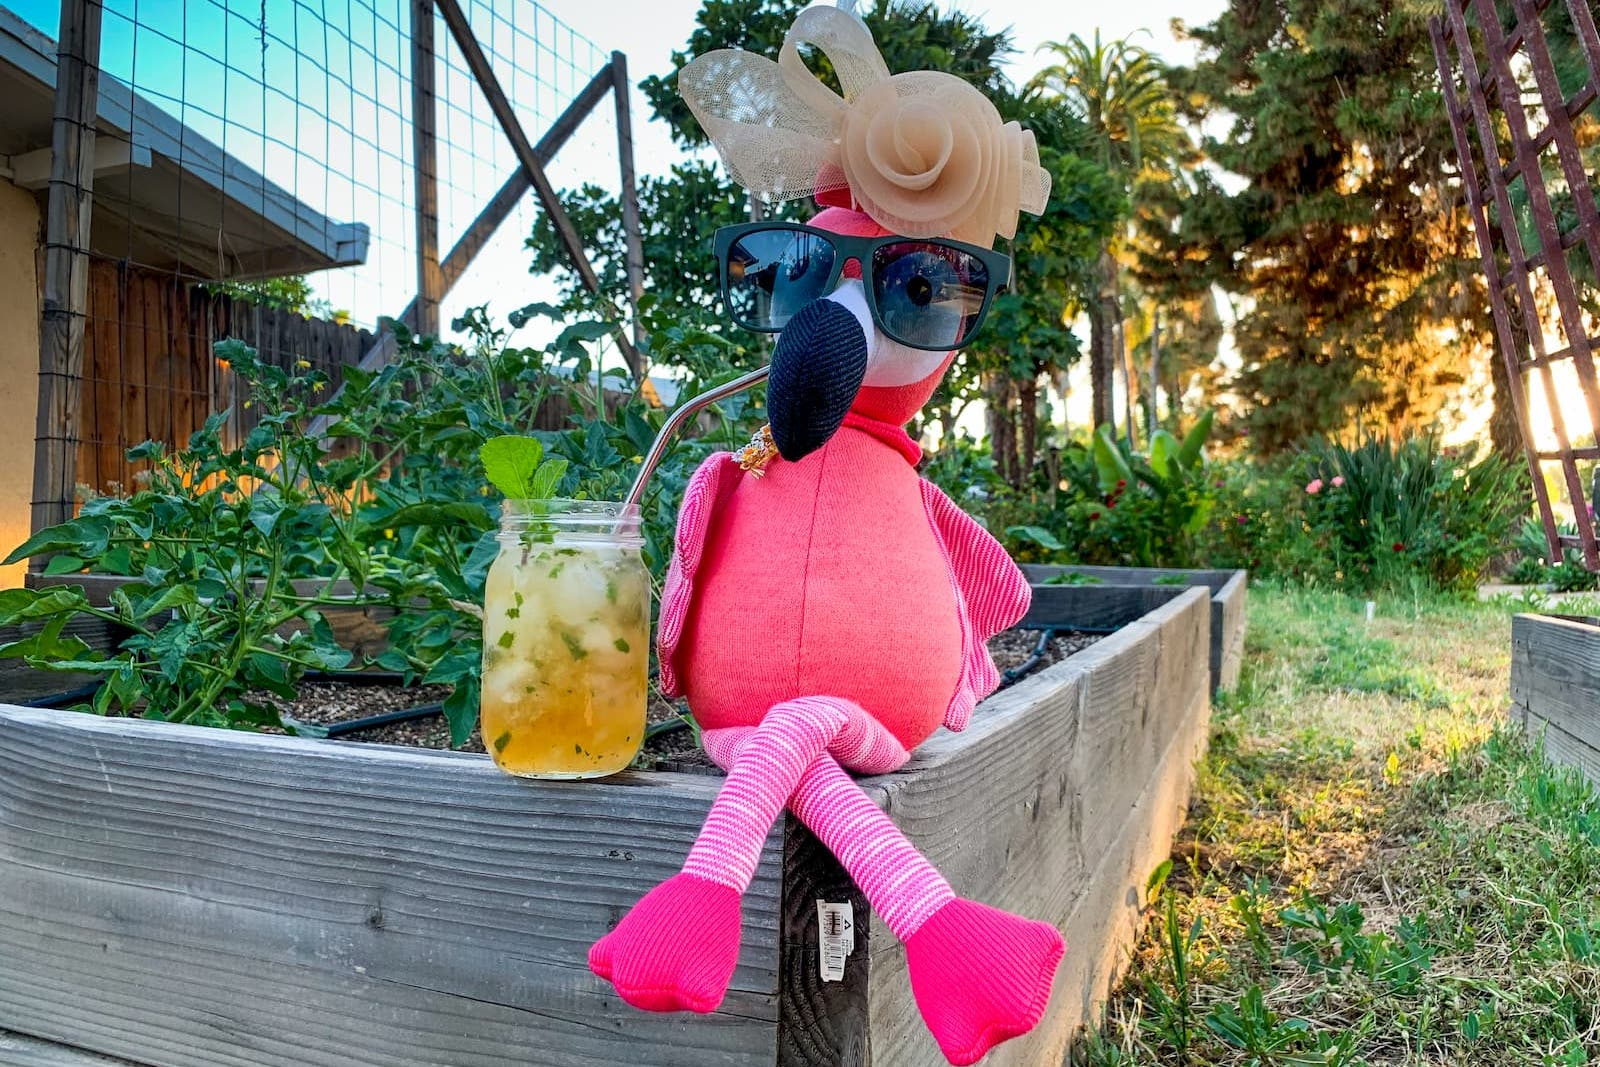 Carl the Flamingo CEO at the Kentucky Derby drinking mint juleps